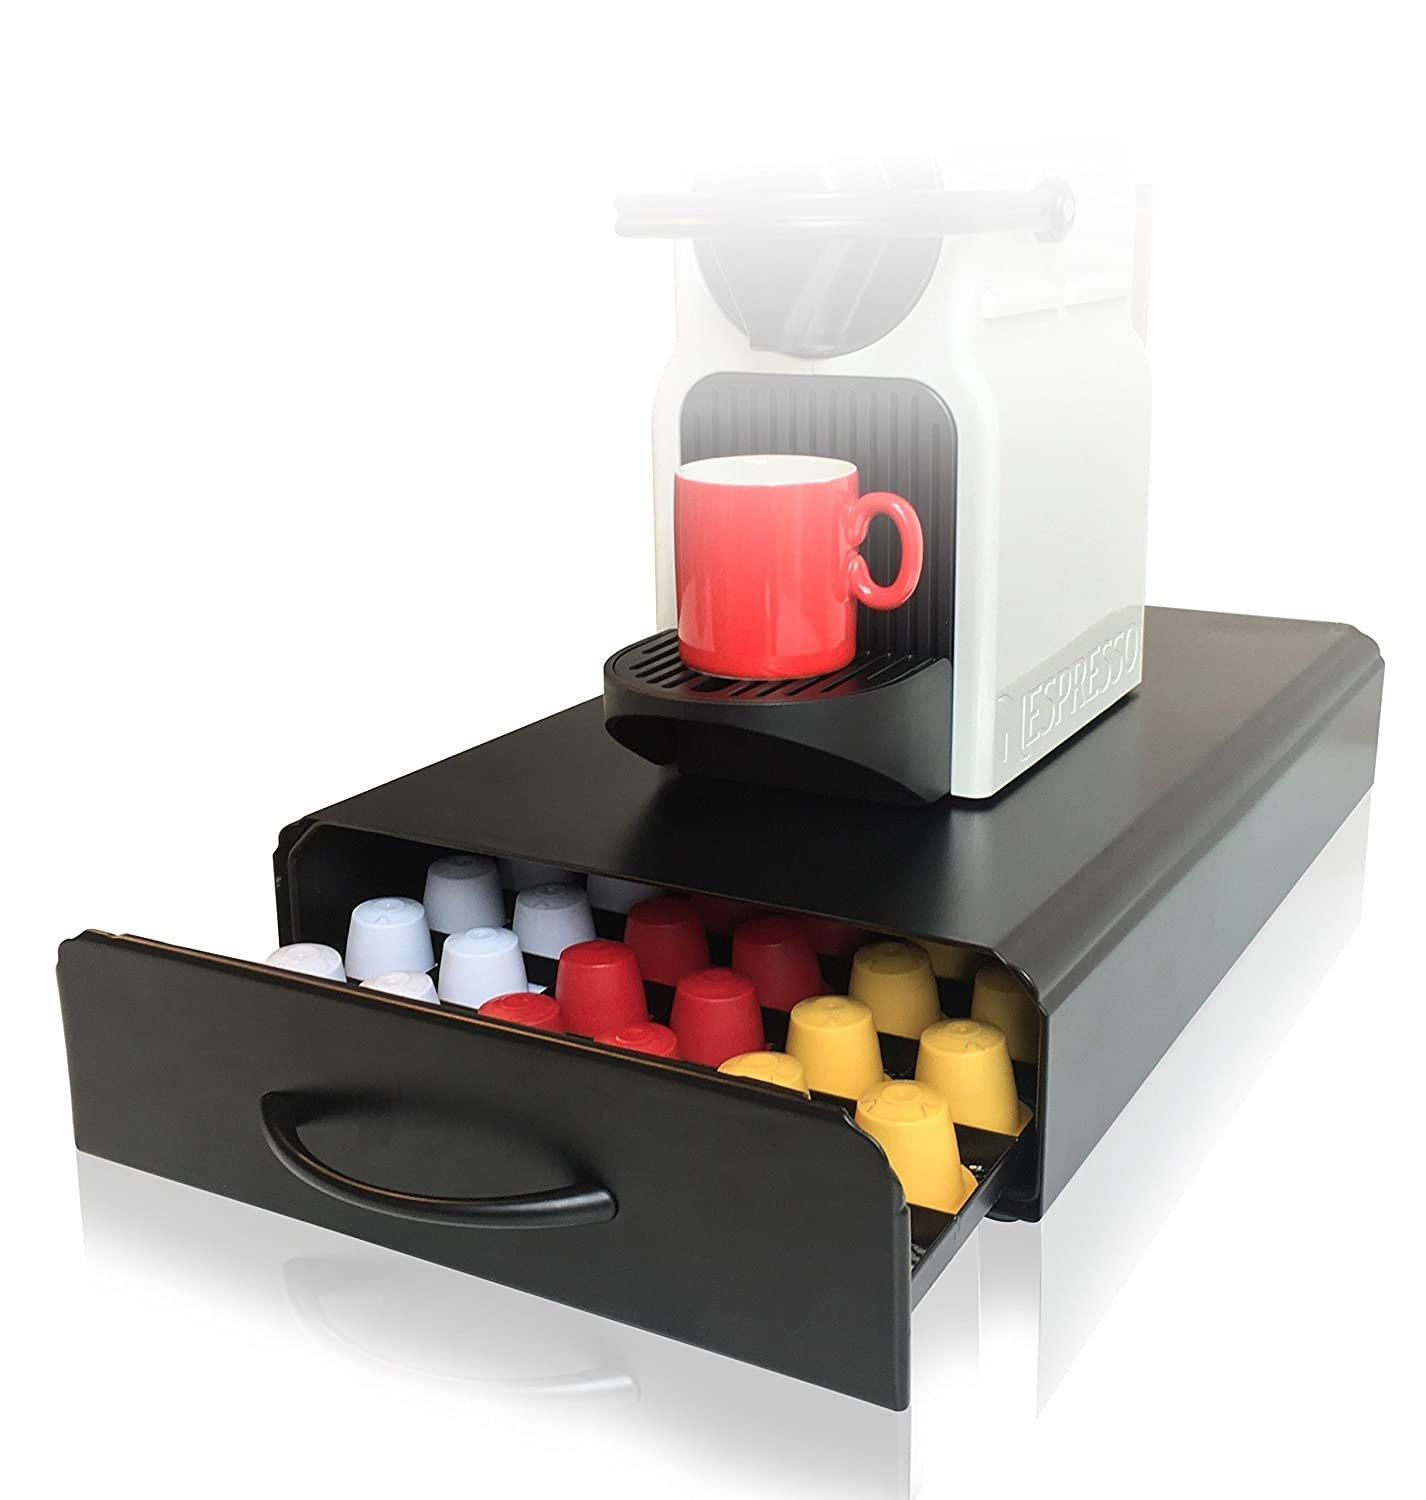 CAFE CONCETTO - Nespresso Capsule Holder - 60pcs - Pod Storage Drawer & Coffee Machine Stand - Perfect for the Inissia, Essenza Mini, Citiz, Pixie, Lattissima & More (Metal/Black)